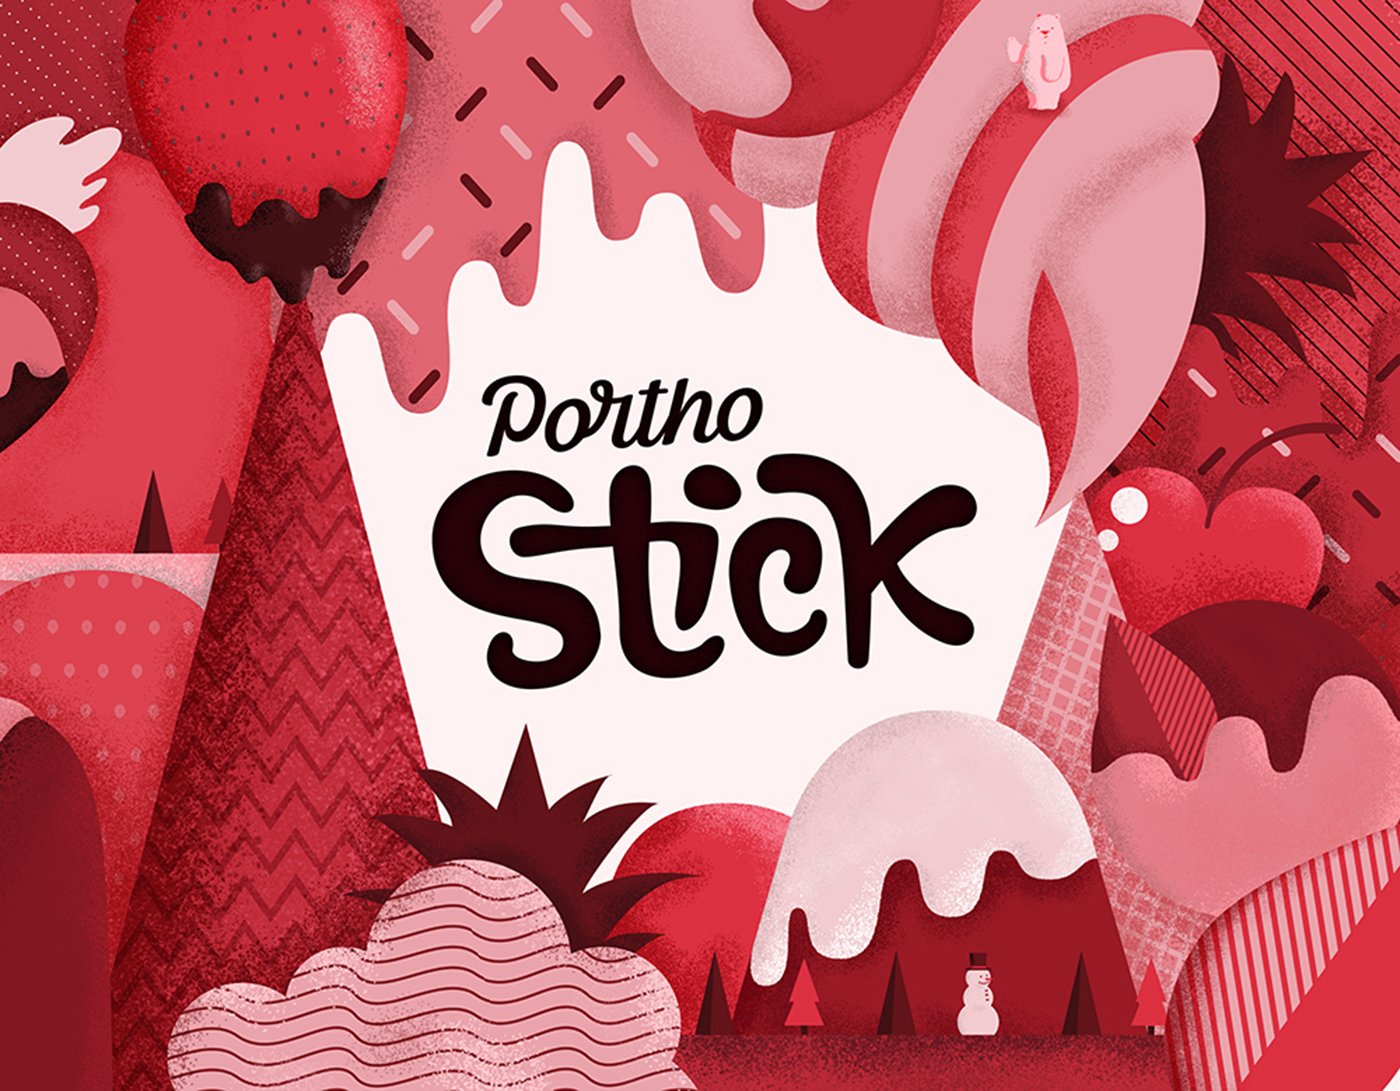 Portho Stick On Packaging Of The World Creative Package Design Gallery